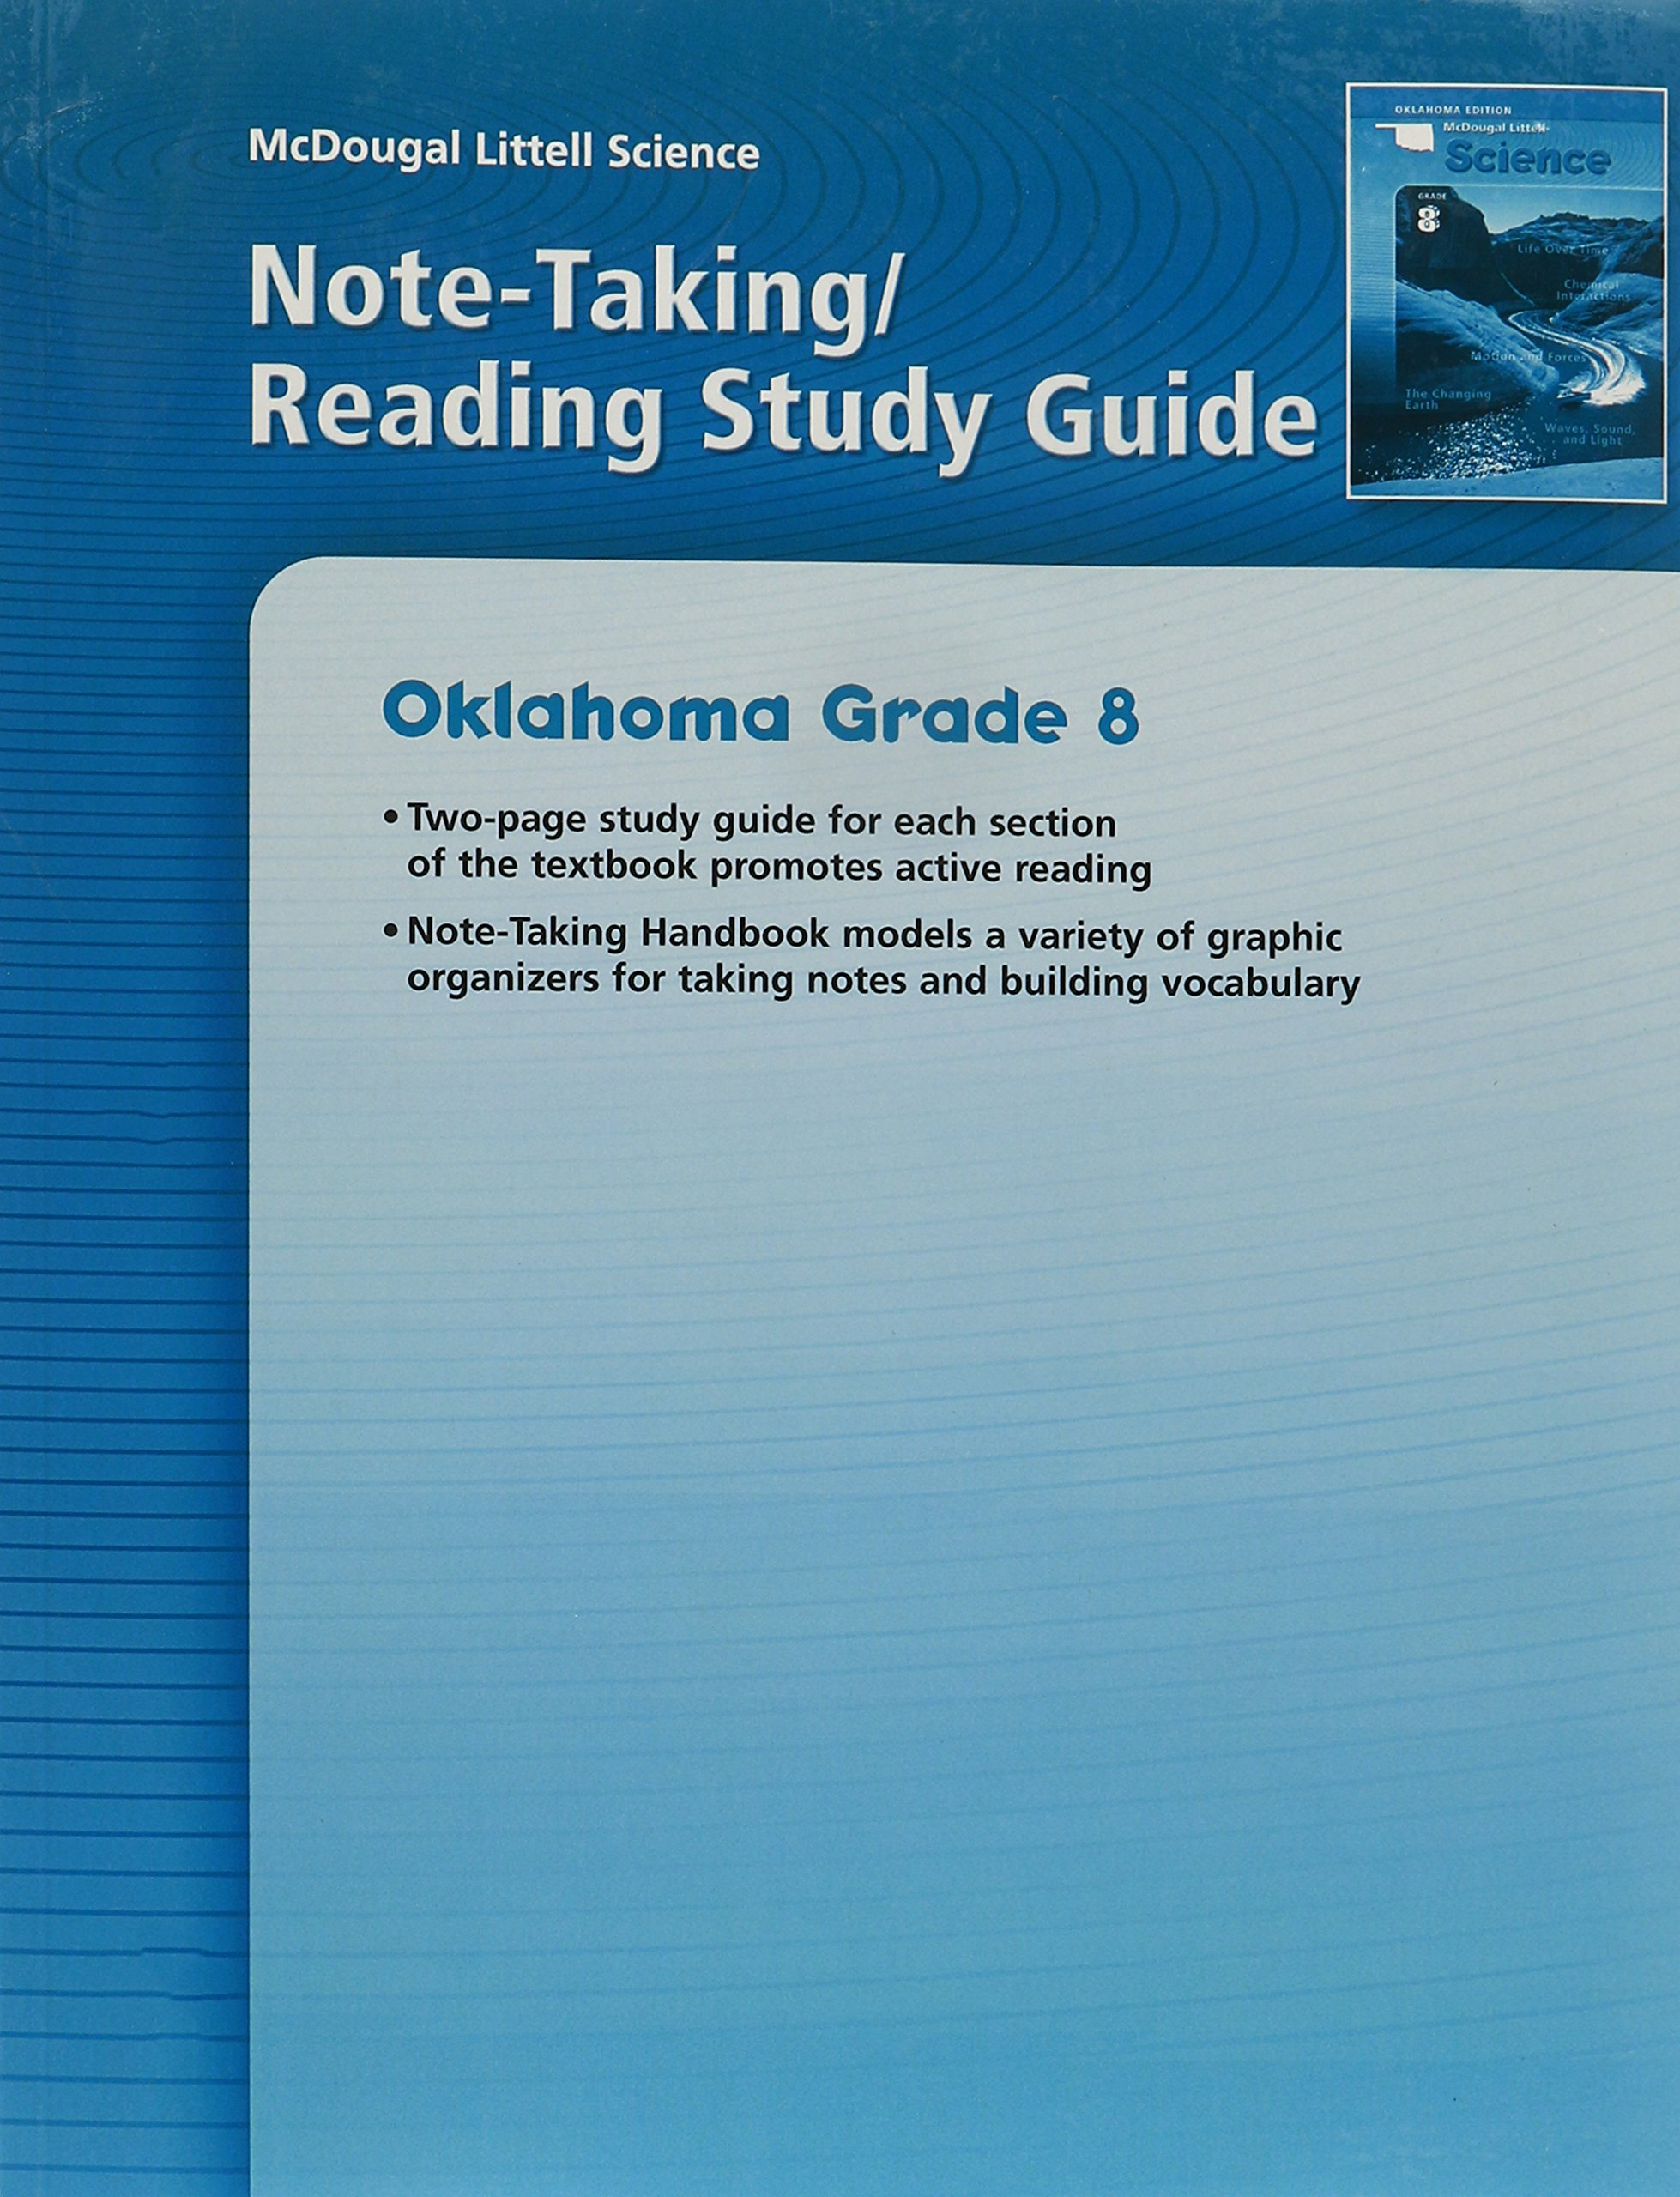 McDougal Littell Science Oklahoma: Note-taking Reading Study Guide Grade 8 Physical Science pdf epub